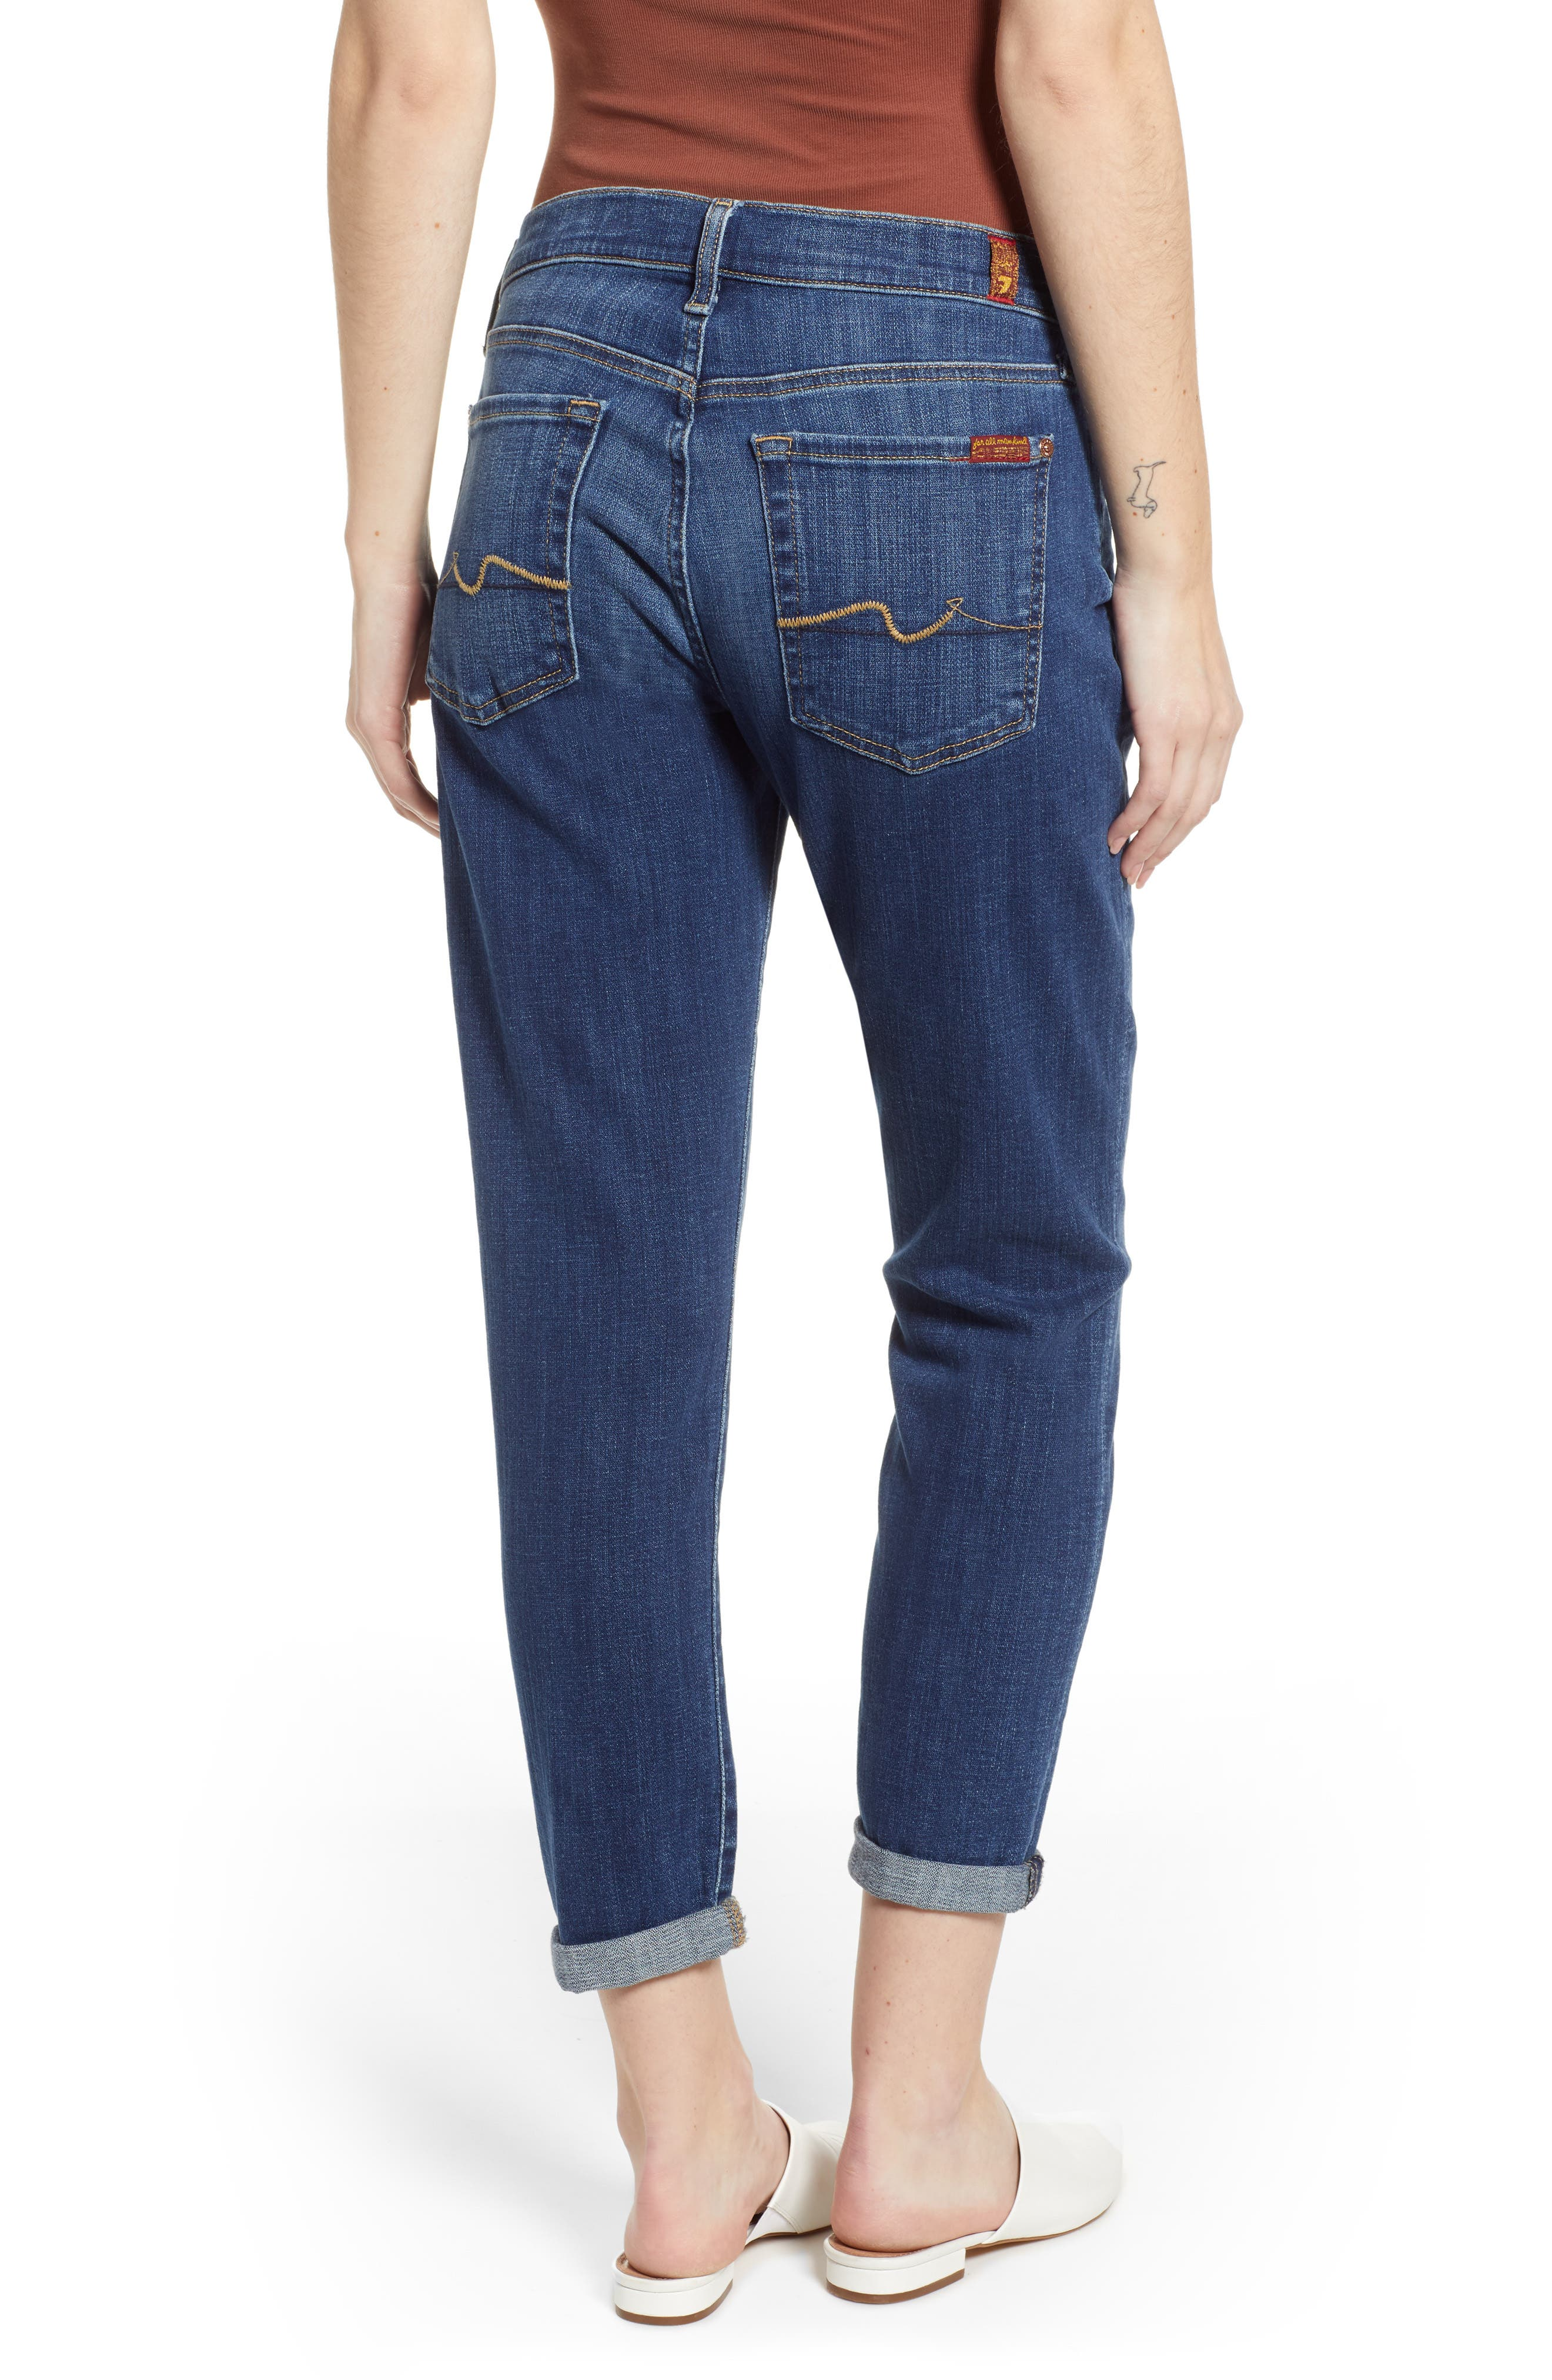 7 FOR ALL MANKIND<SUP>®</SUP>, Josefina Ankle Boyfriend Jeans, Alternate thumbnail 2, color, BROKEN TWILL VANITY CLEAN